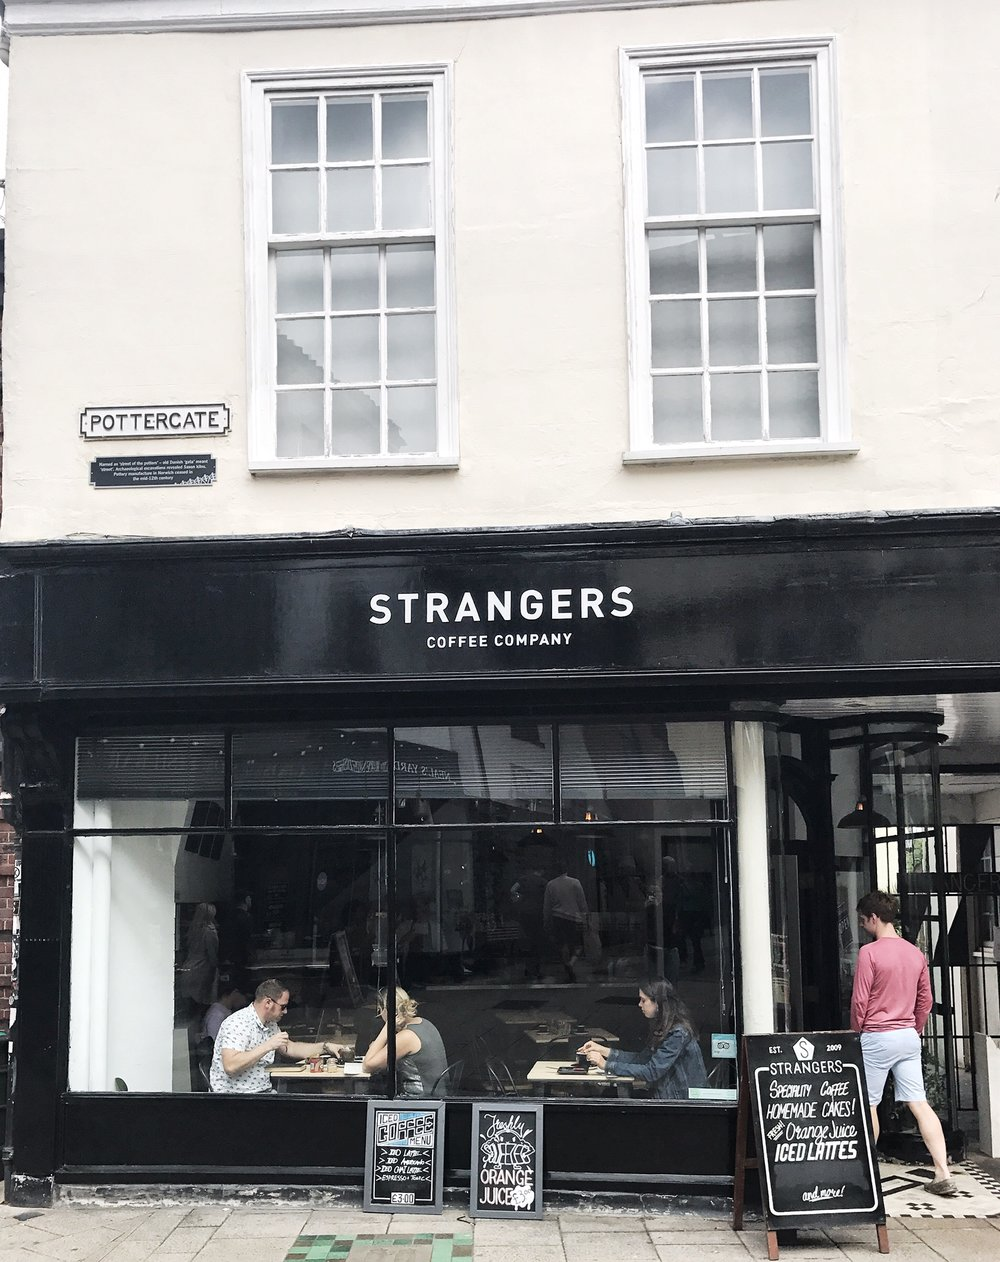 STRANGERS COFFEE COMPANY - A true passion for specialty coffee.